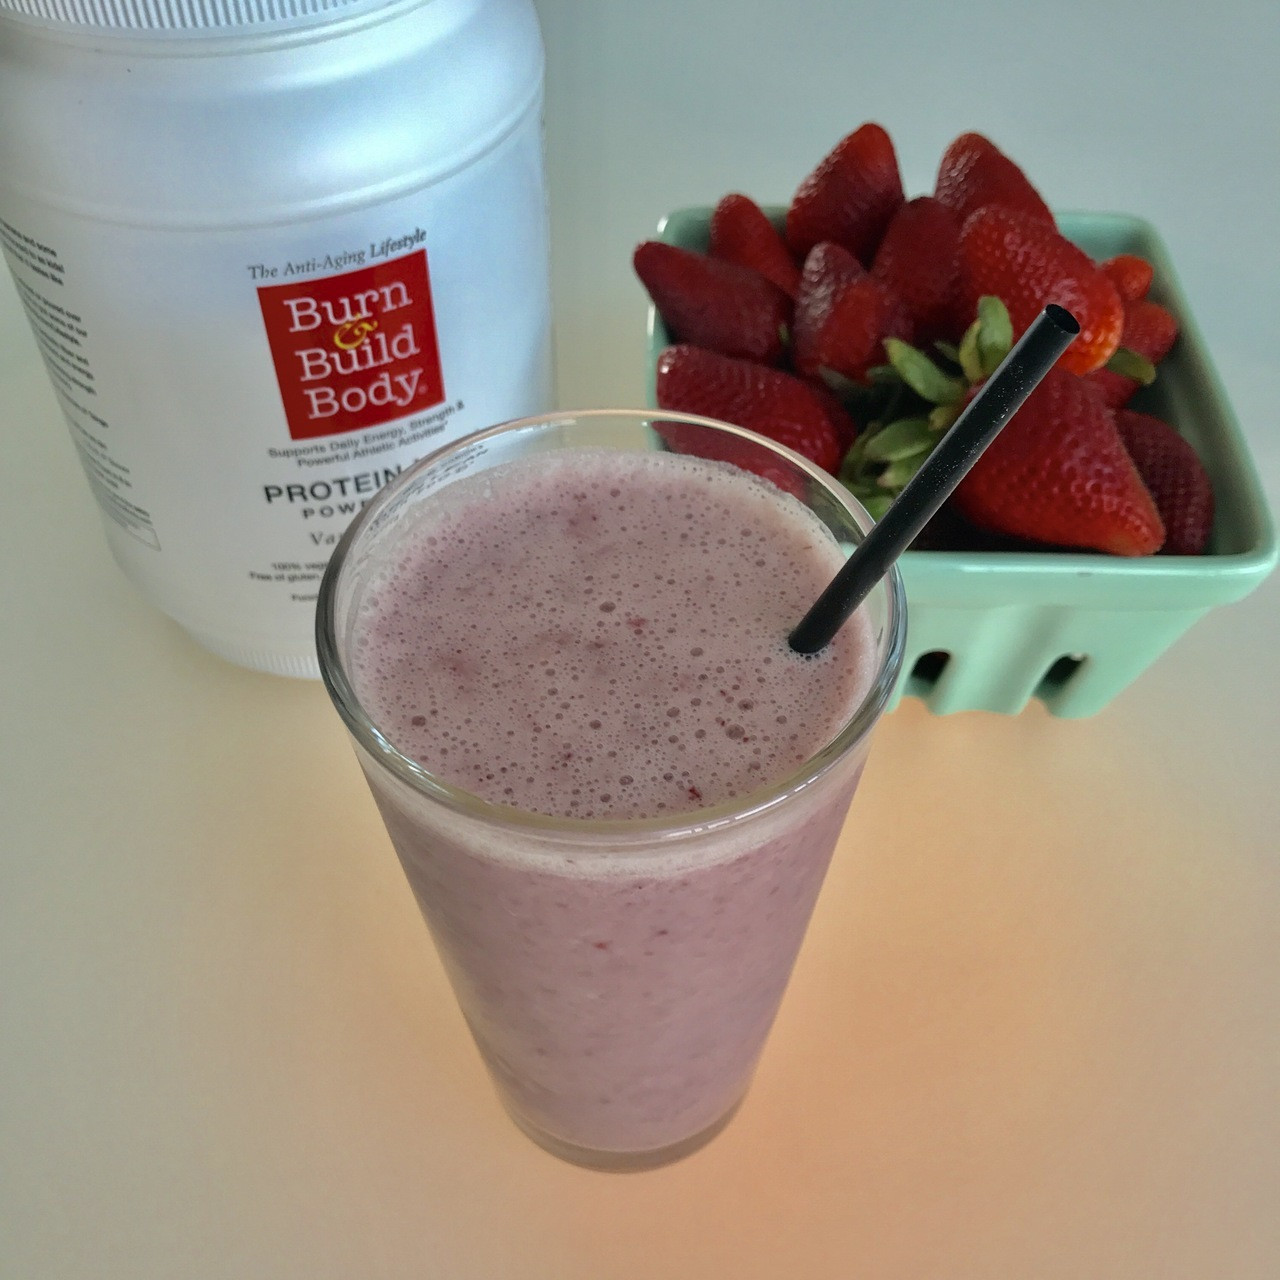 Protein Lean Vanilla and Organic Strawberry Smoothie with Almond Milk